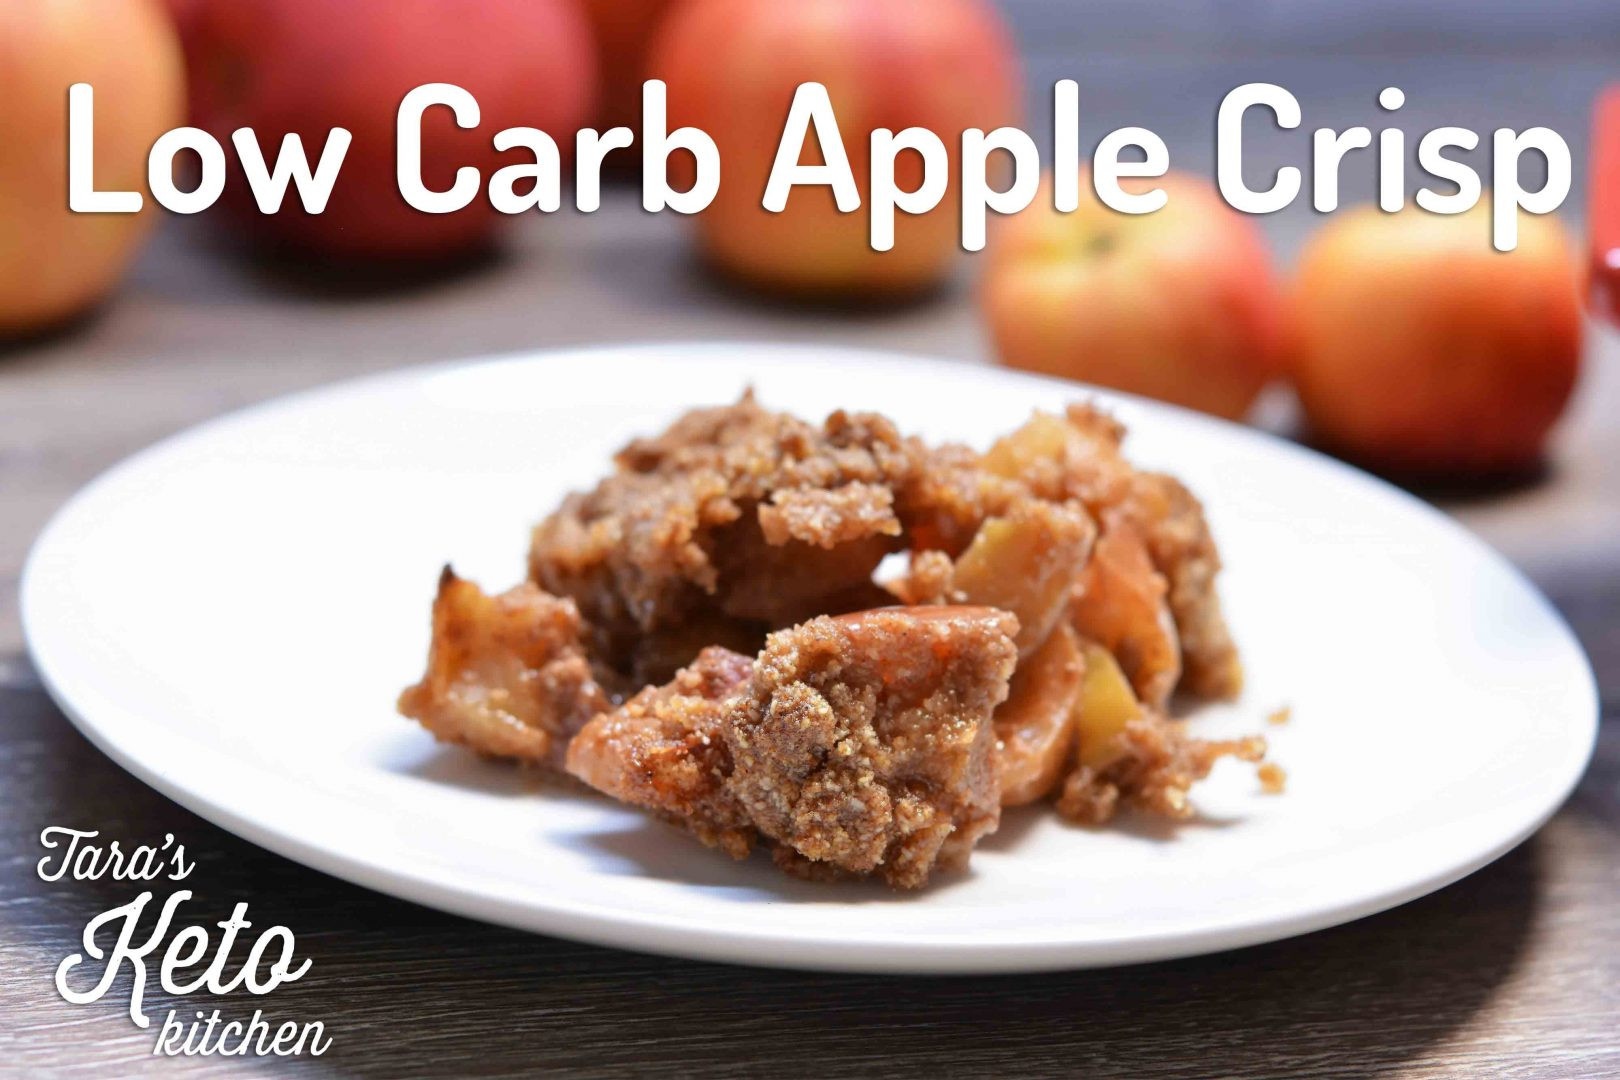 Low Carb Apple Dessert  Low Carb Apple Crisp Recipe Grain Free Added Sugar Free